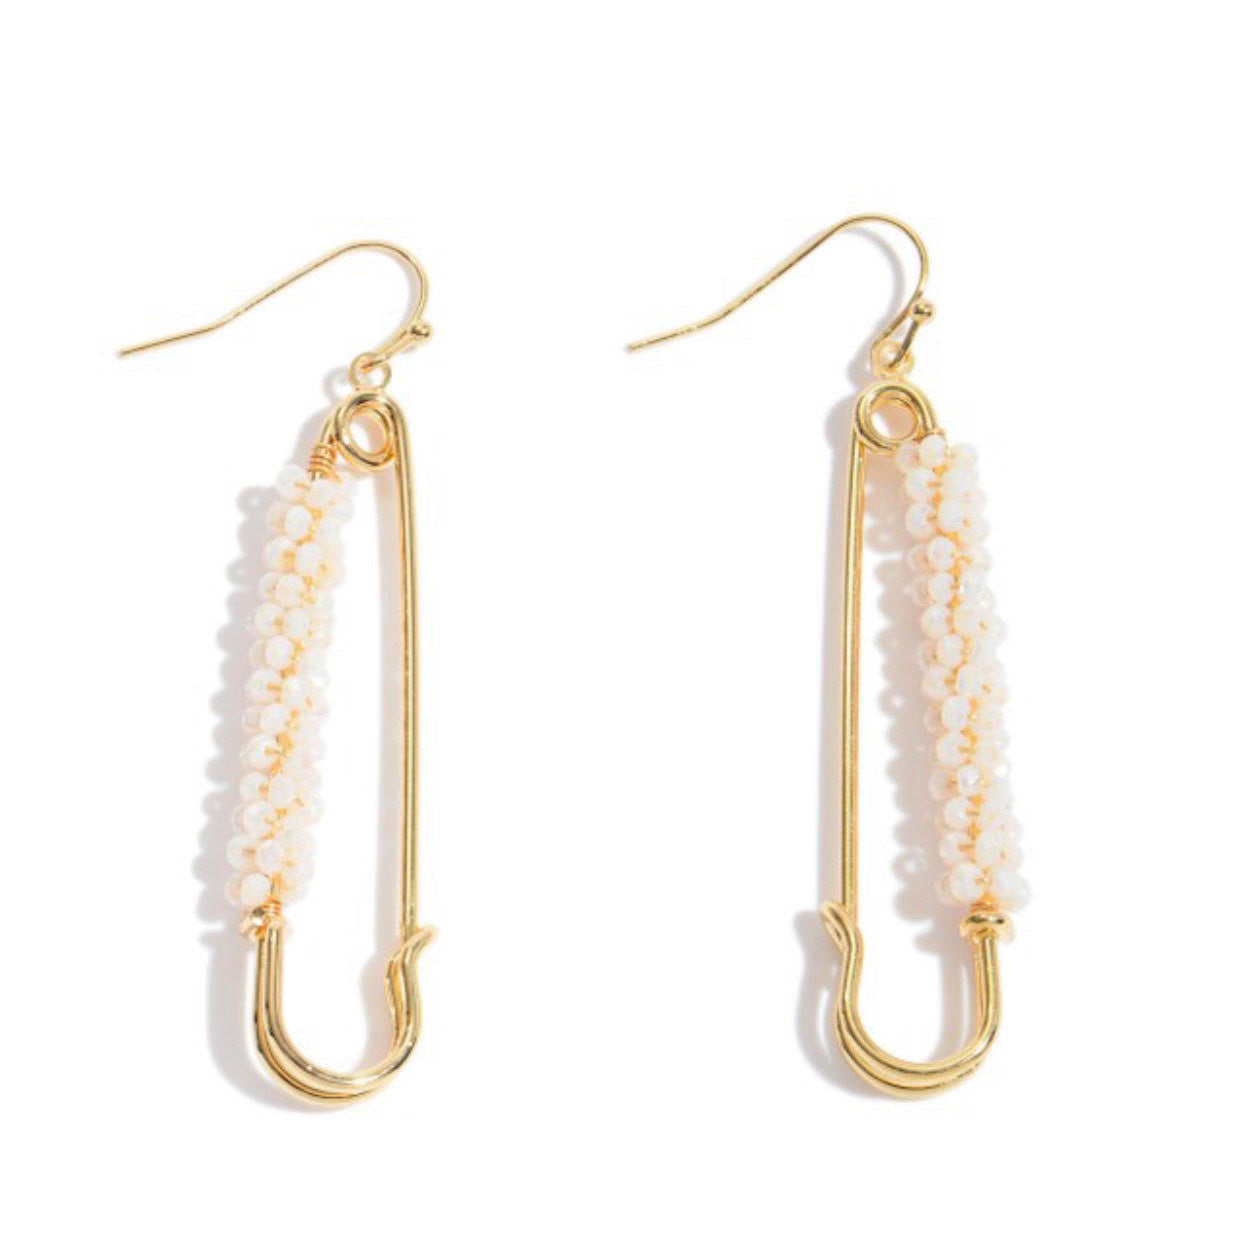 Beaded Safety Pin Drop Earrings in Gold (Natural or Mint)